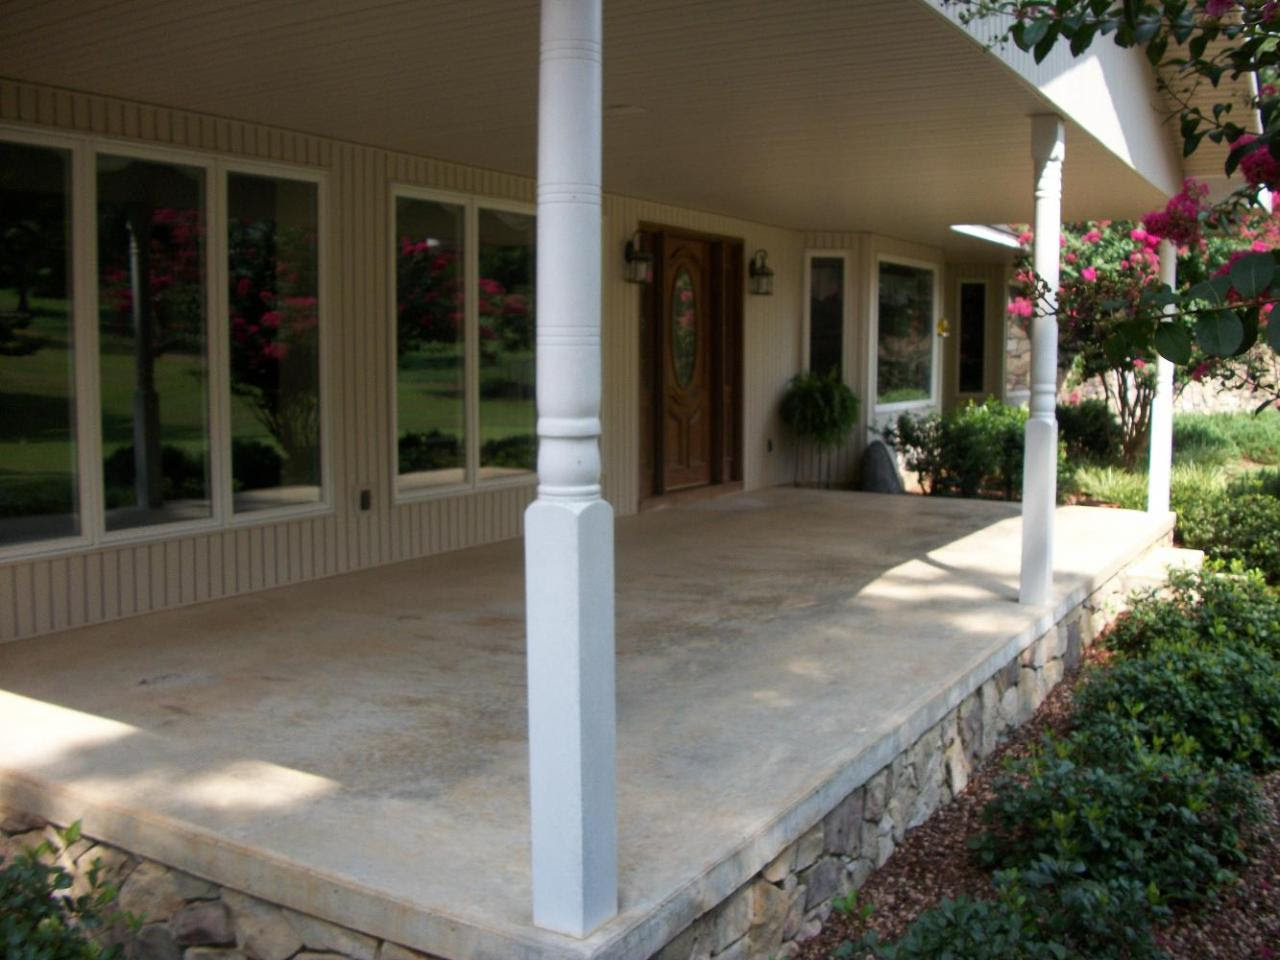 exterior chic cream color stone floor and cream wall paint color also brown wooden door with deck construction and front porch remodel inspiring front porch design ideas